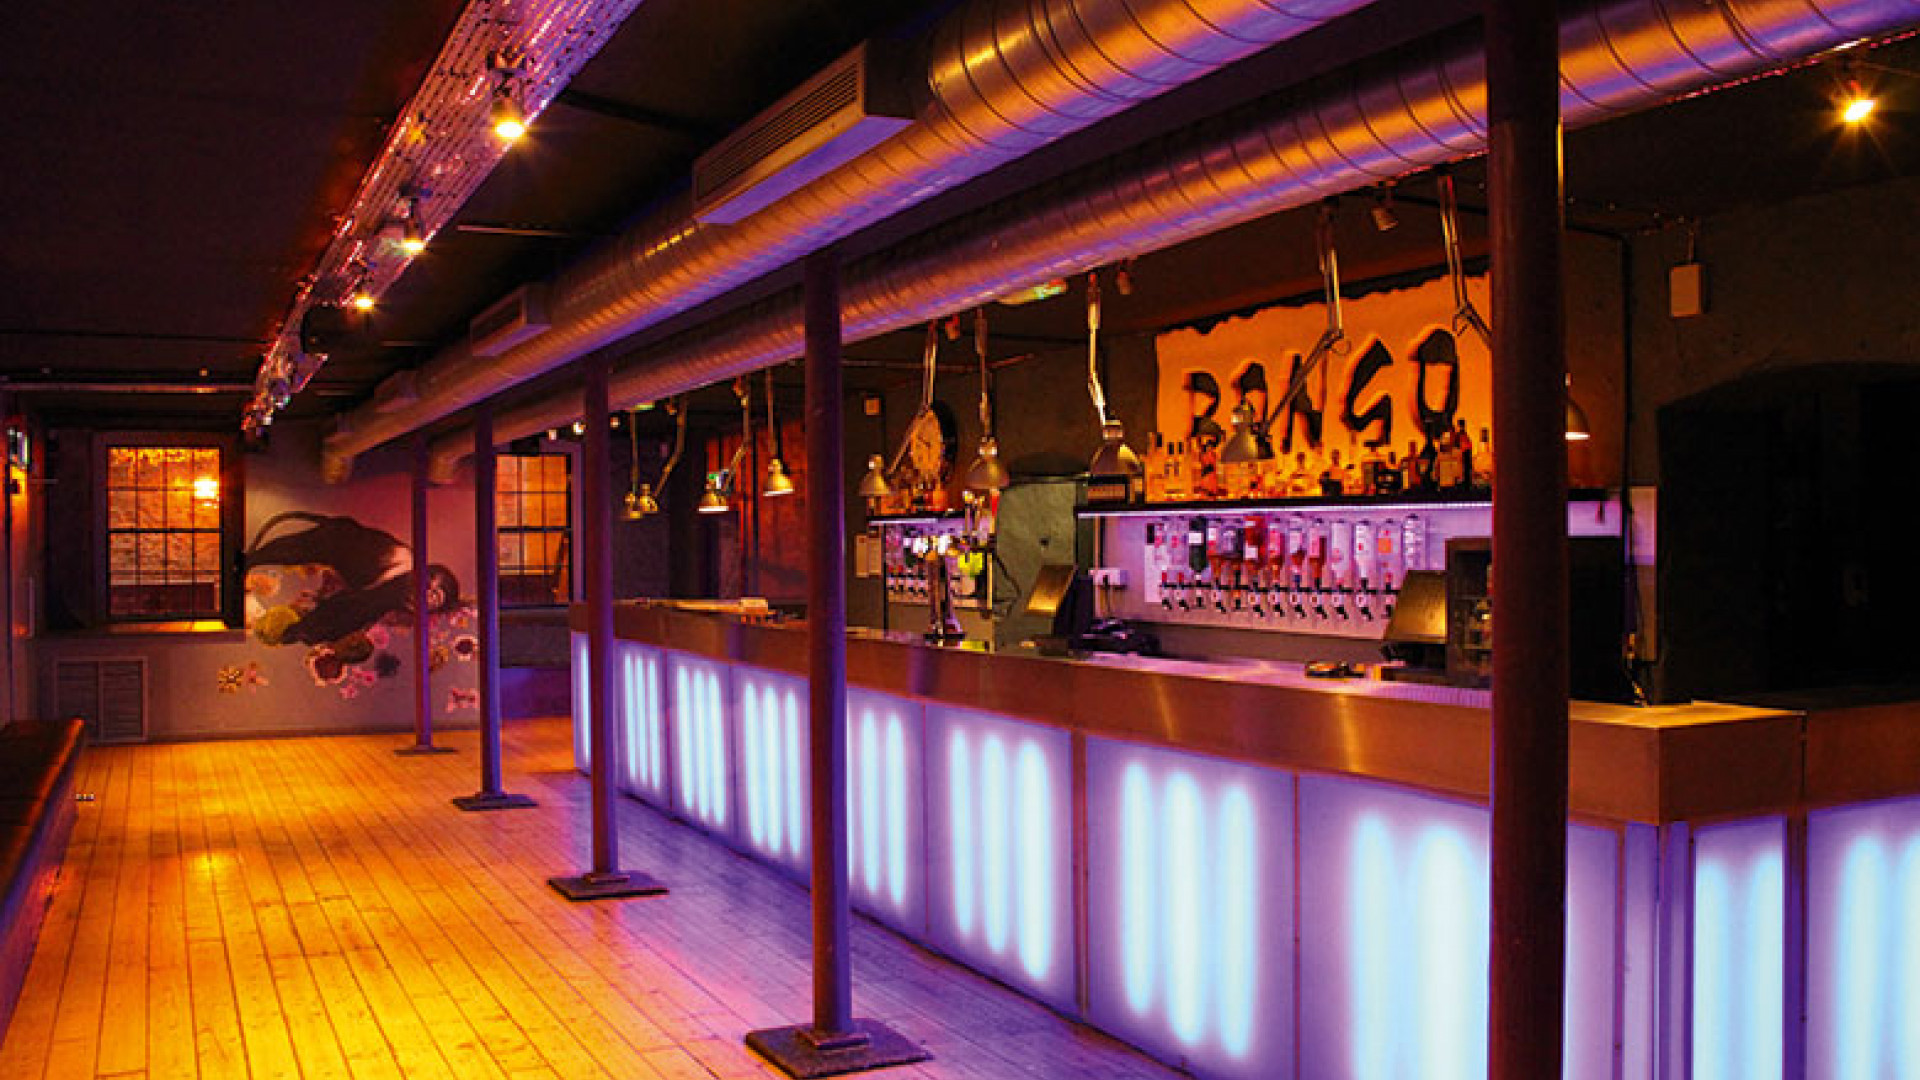 The Bongo Club Edinburgh bar